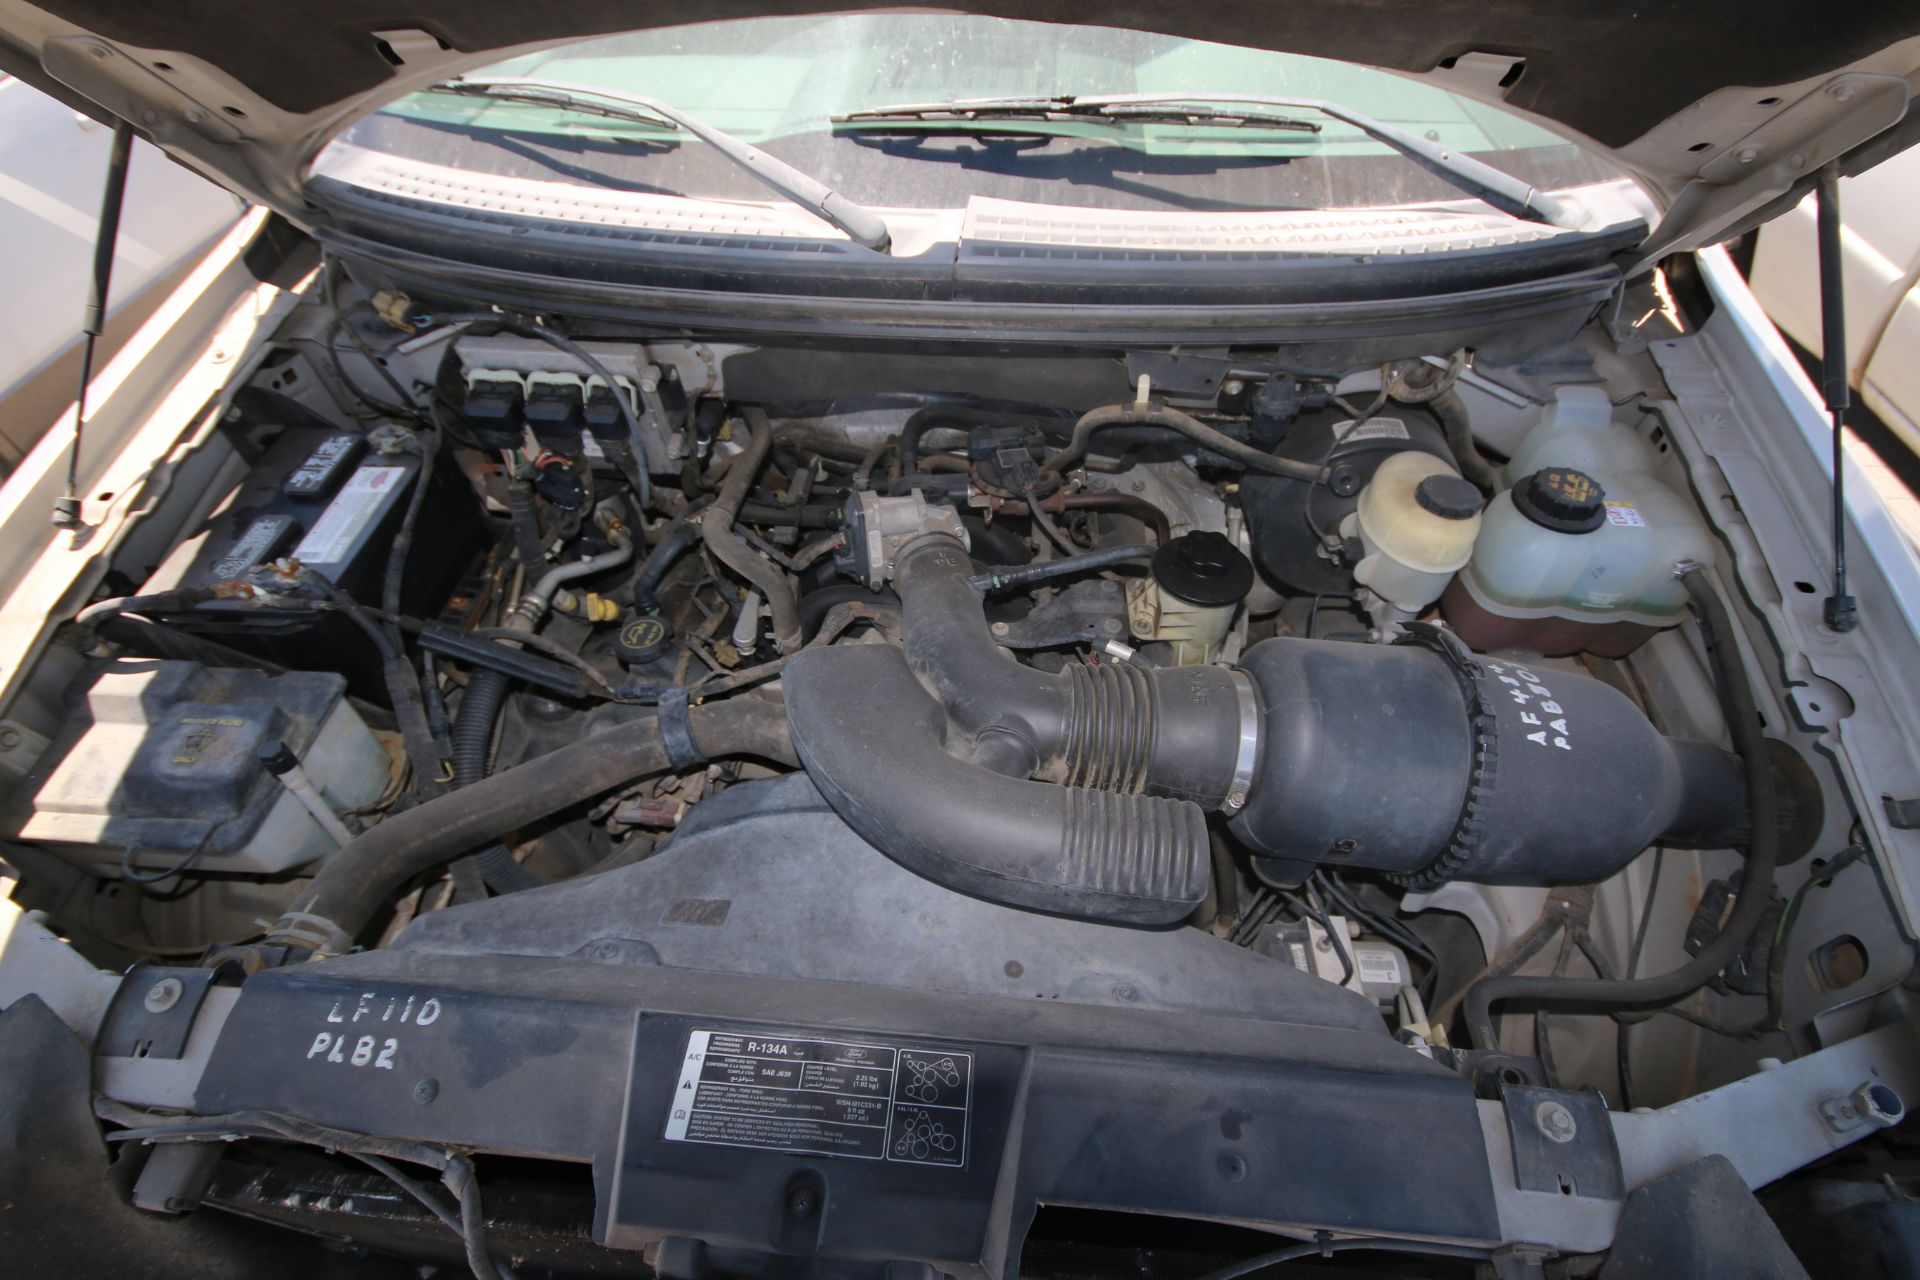 2008 Ford F150 Pick Up Truck, VIN #: 1FTRX12W7BFB9710, with 214,817 Miles, Started Up as of 06/24/ - Image 22 of 24